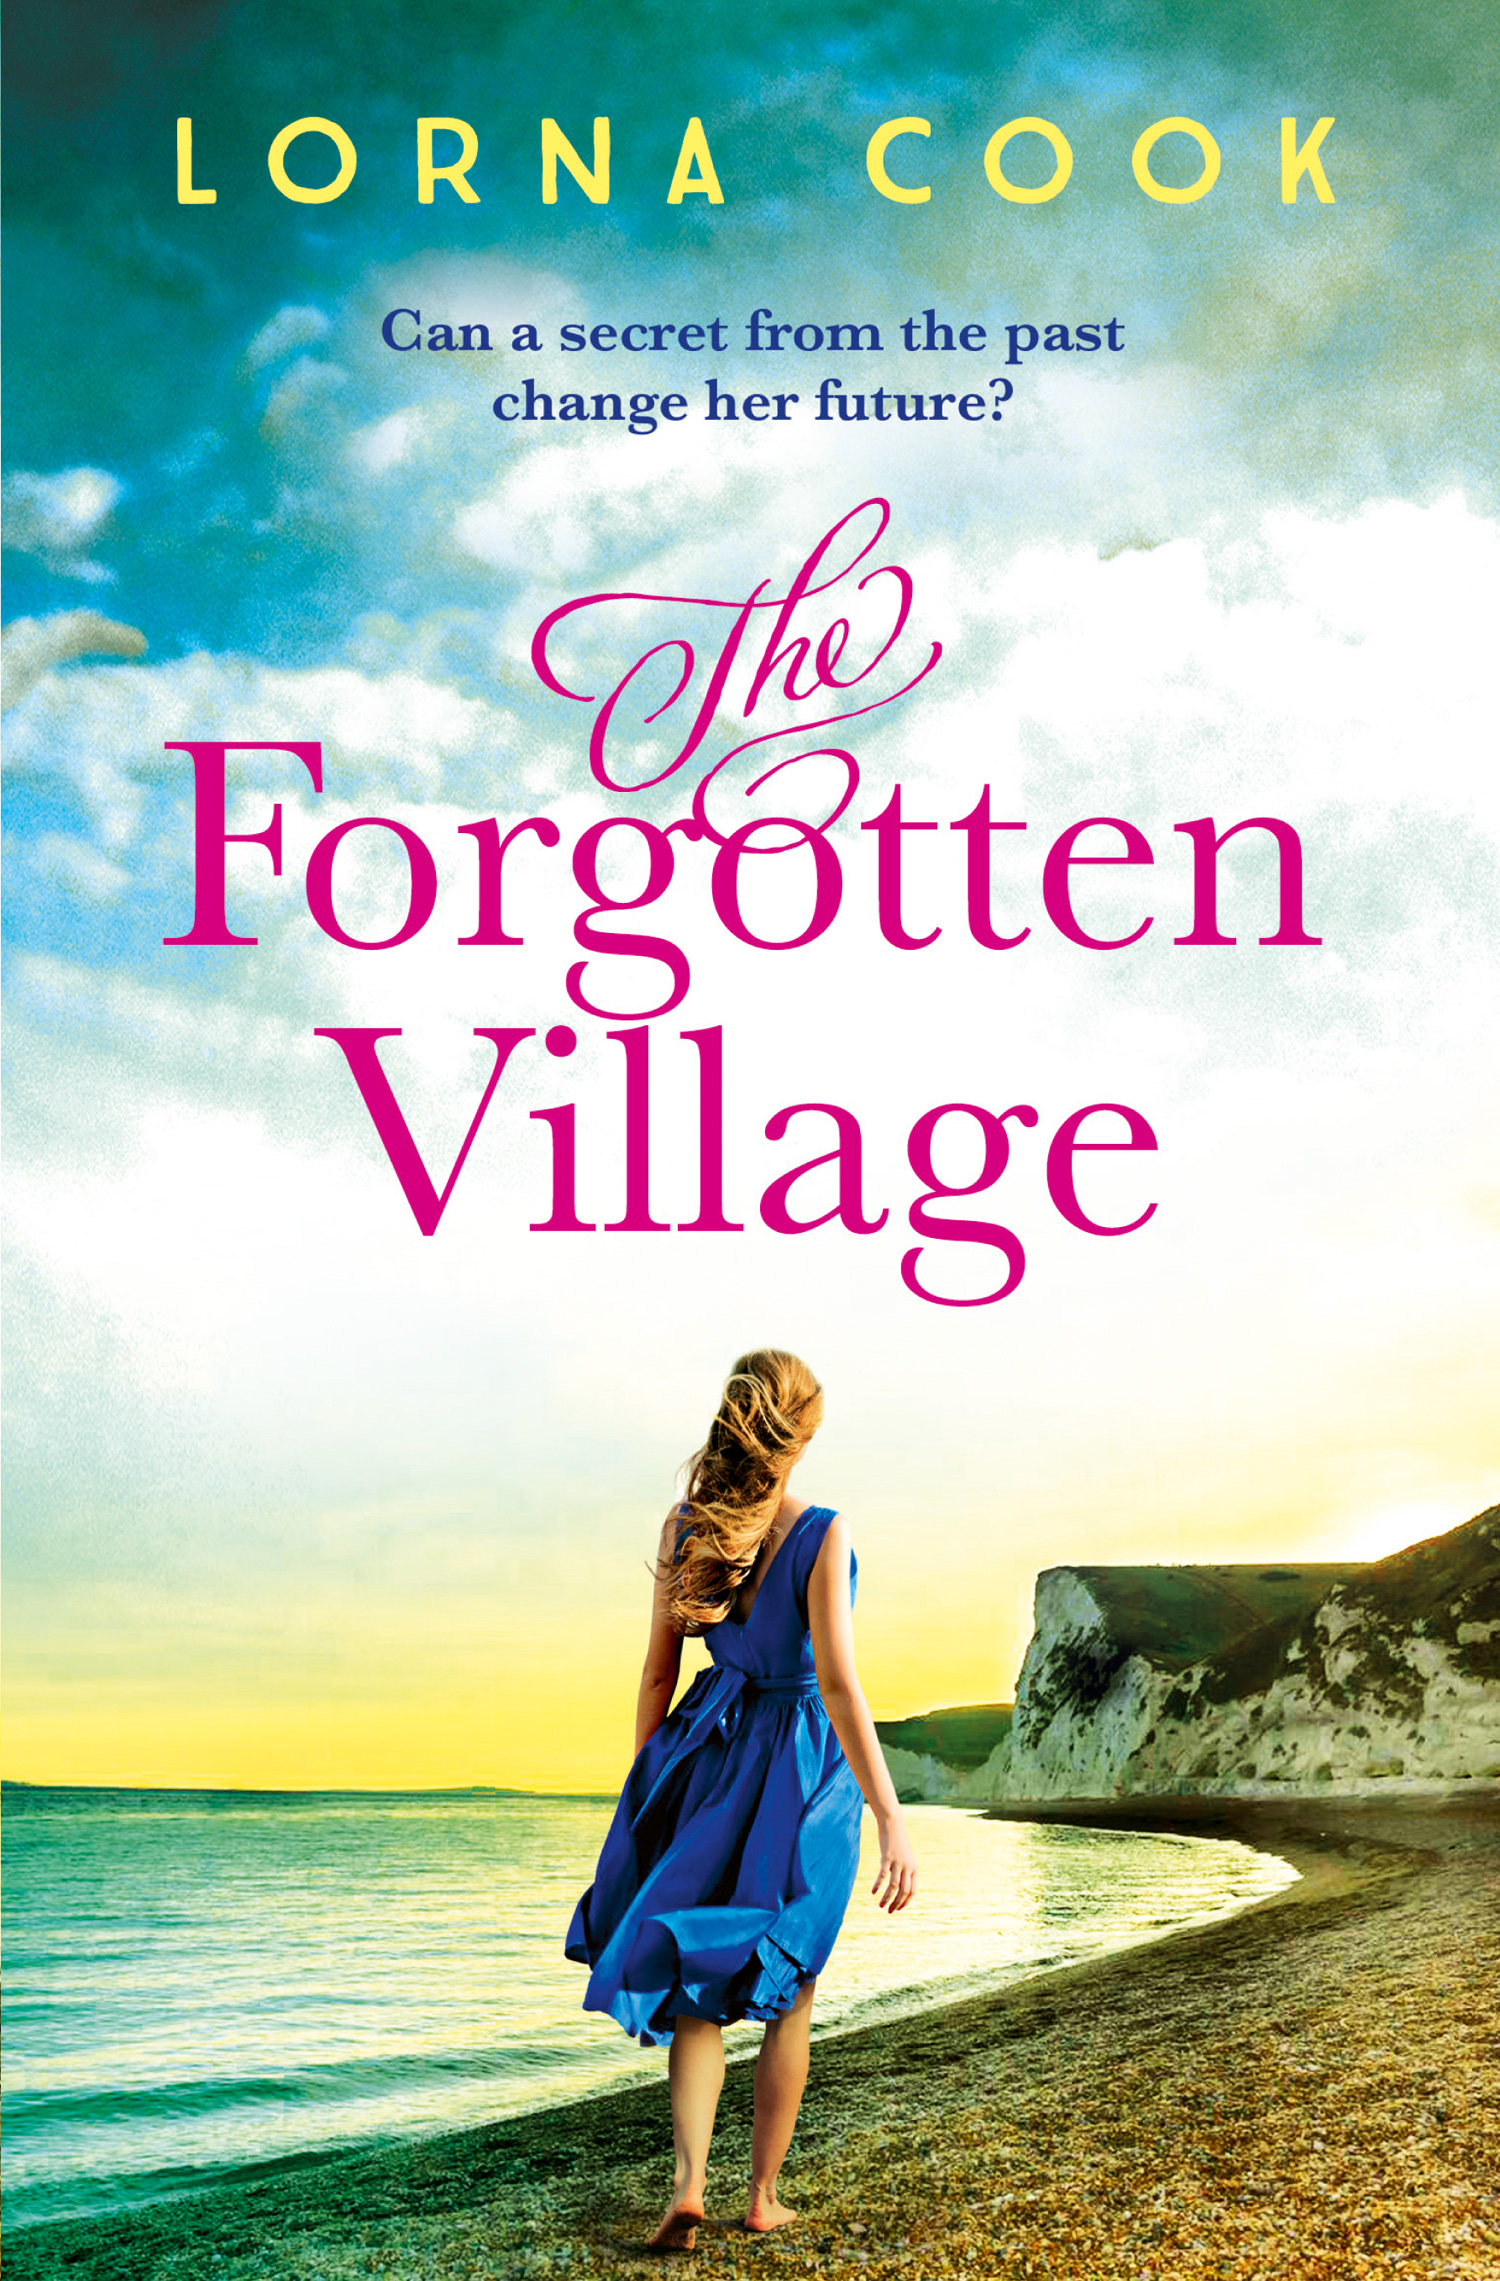 The Forgotten Village - Kindle Number 1 BestsellerOver 100,000 copies sold.A timeless story of love and sacrifice, perfect for fans of Rachel Hore, Tracy Rees and Kate Morton.'I was so absorbed that I read it in a single day' KATE RIORDAN, author of The Girl in the Photograph'A gripping tale of secrets and love… I loved it' LIZ FENWICK, author of The Cornish House1943: The world is at war, and the villagers of Tyneham are being asked to make one more sacrifice: to give their homes over to the British army. But on the eve of their departure, a terrible act will cause three of them to disappear forever.2018: Melissa had hoped a break on the coast of Dorset would rekindle her stagnant relationship,but despite the idyllic scenery, it's pushing her and Liam to the brink. When Melissa discovers a strange photograph of a woman who once lived in the forgotten local village of Tyneham, she becomes determined to find out more about her story. But Tyneham hides a terrible secret, and Melissa's search for the truth will change her life in ways she never imagined possible.CLICK HERE TO BUY THE FORGOTTEN VILLAGE IN EITHER EBOOK OR PAPERBACKThe Forgotten Village will be released in April 2019 in paperback with:Avon (HarperCollins) in the UKPenguin Verlag in GermanyA.W. Bruna in The NetherlandsAvon (HarperCollins) in Canada & USA, where it will be called The Forgotten Wife.